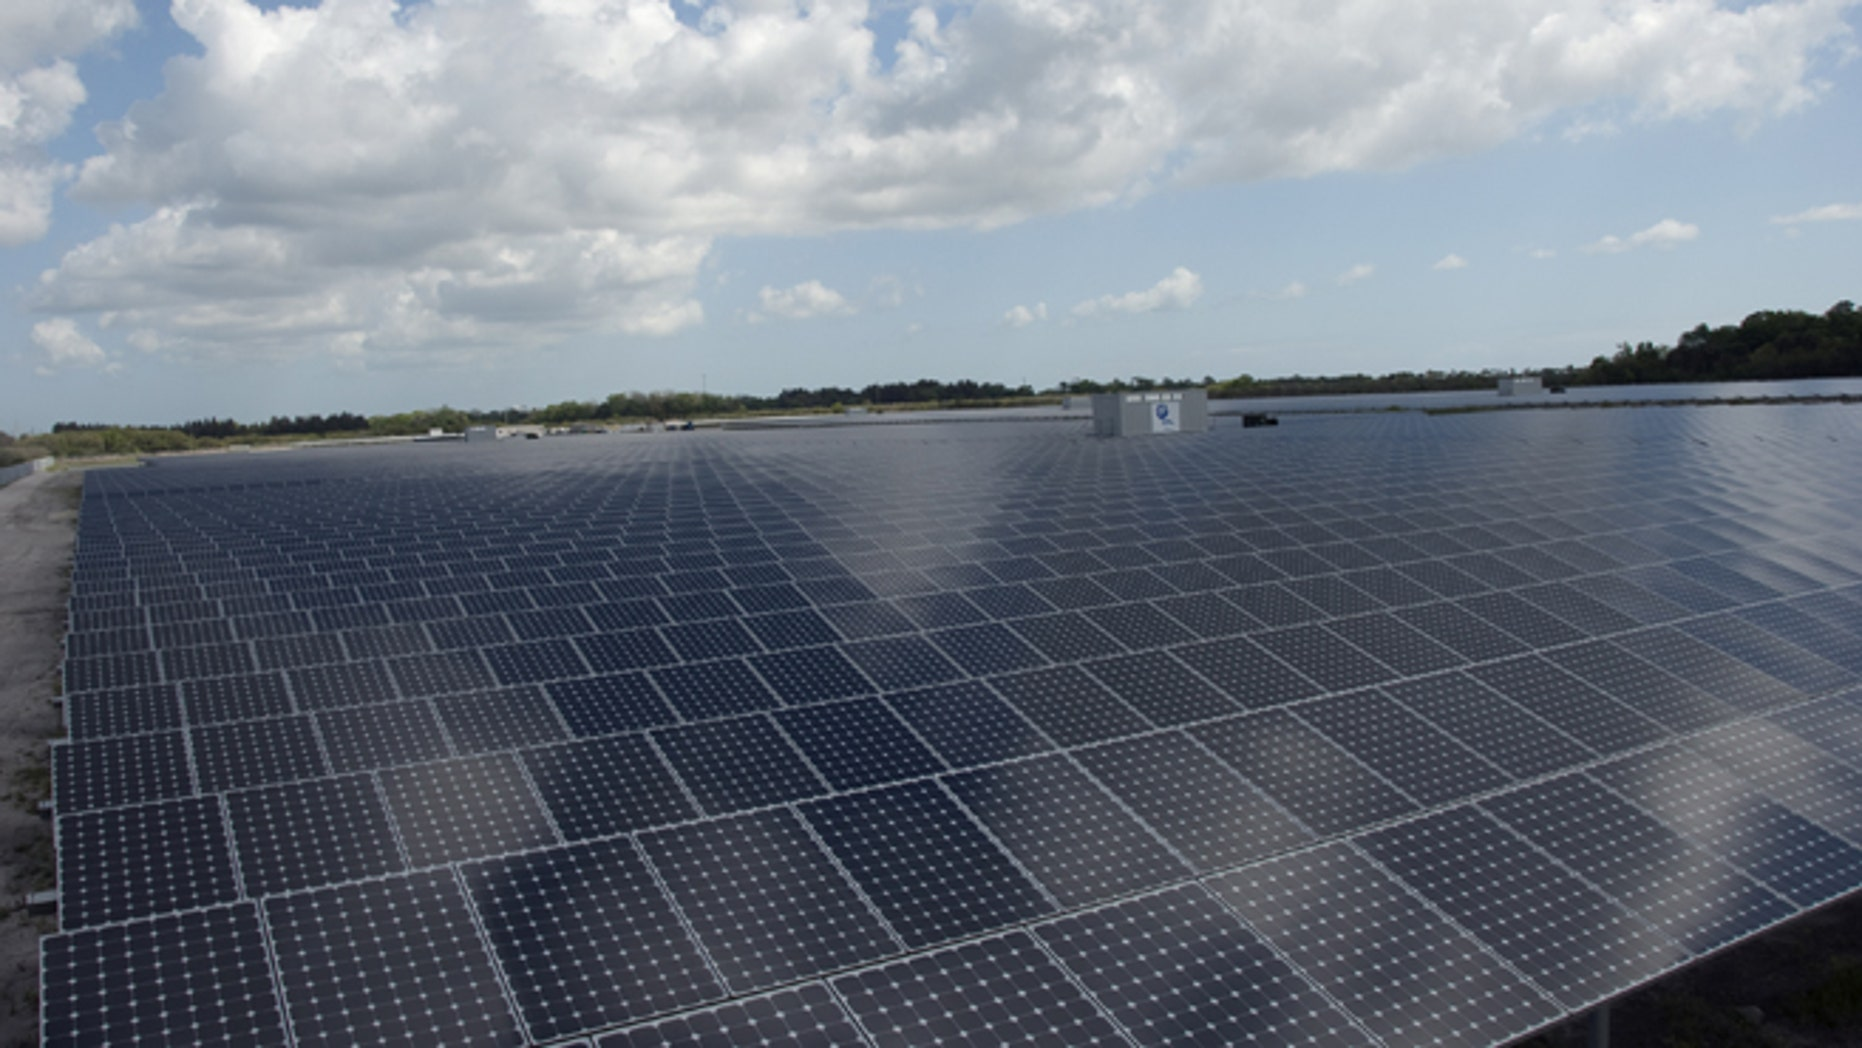 Apple is planning on building a solar farm in Reno, NV similar to this one off of State Road 3 at NASA's Kennedy Space Center in Florida.